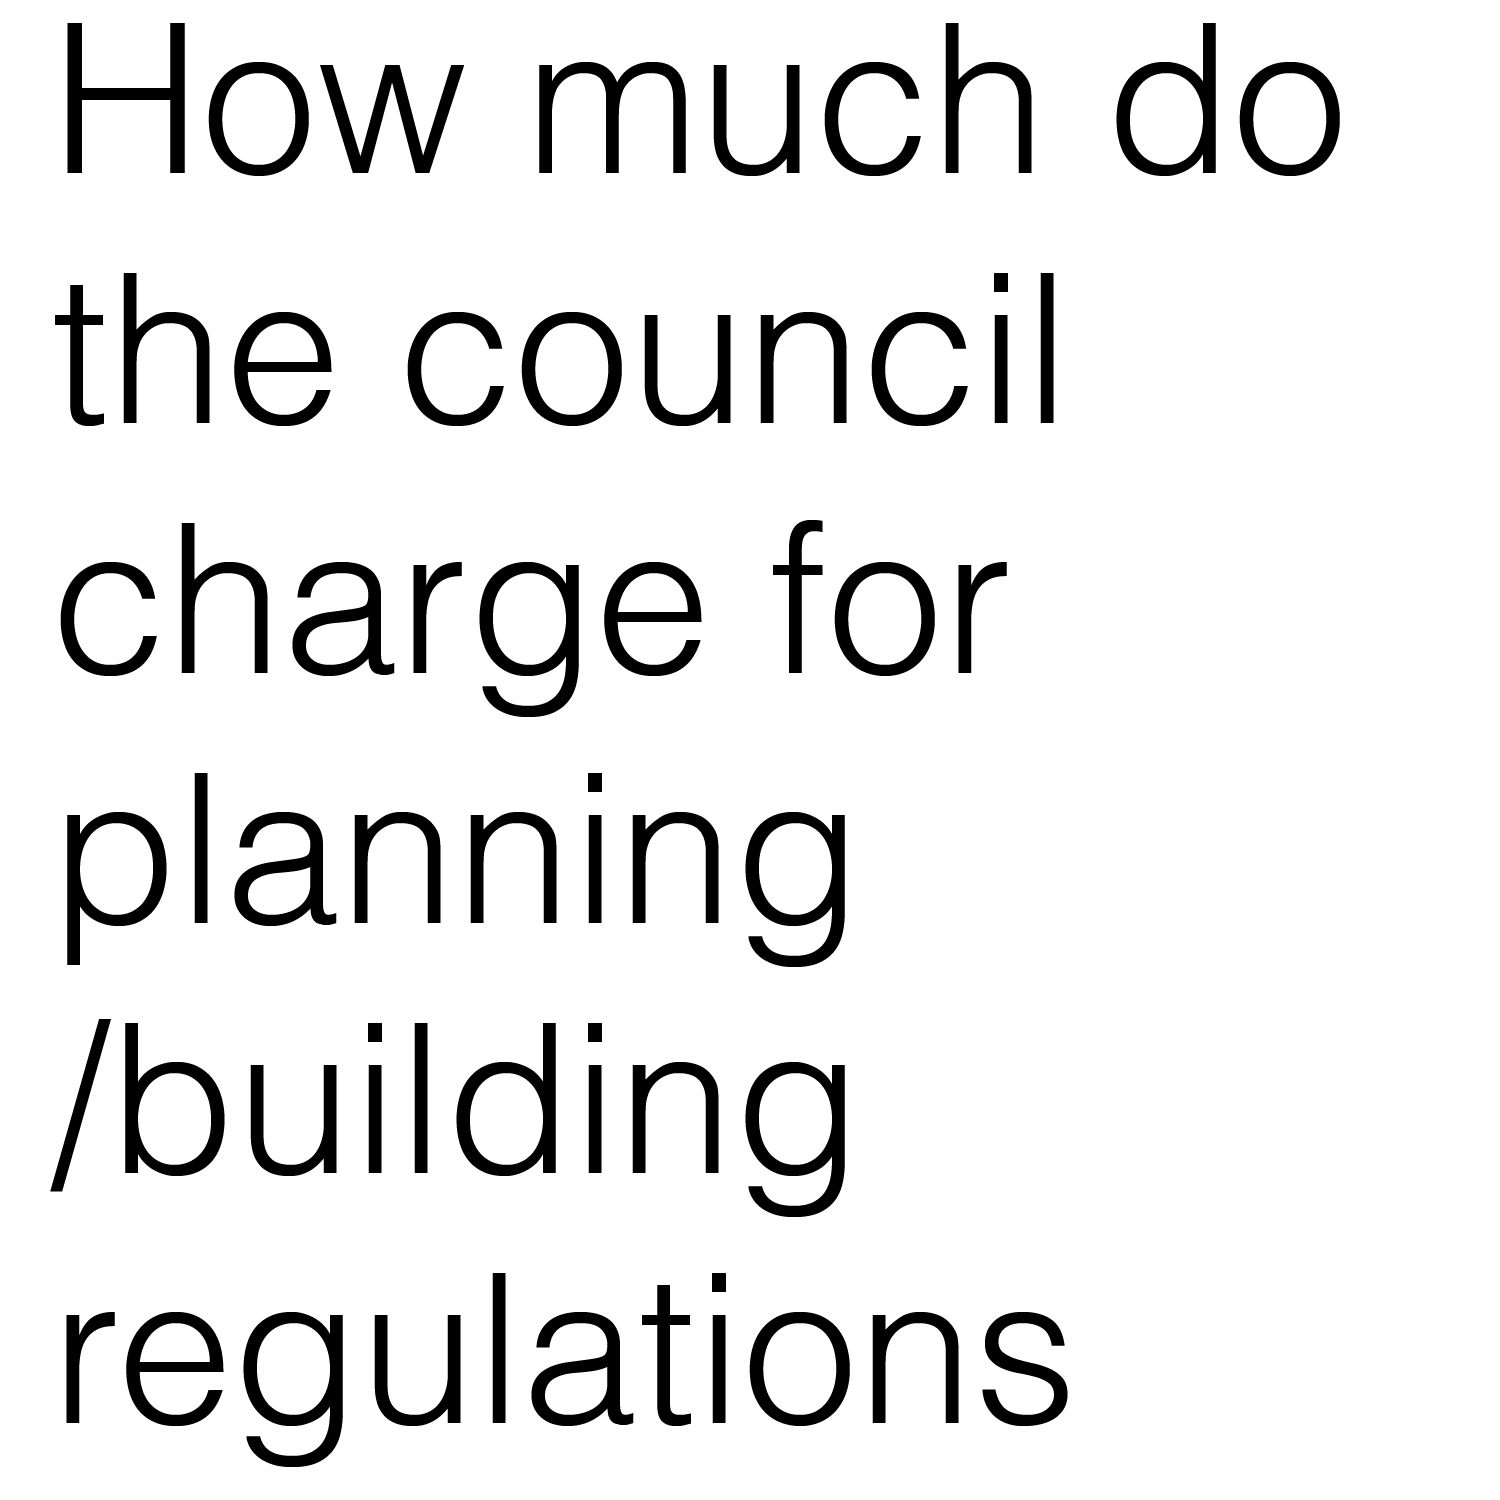 How much do the council charge for planning building applications